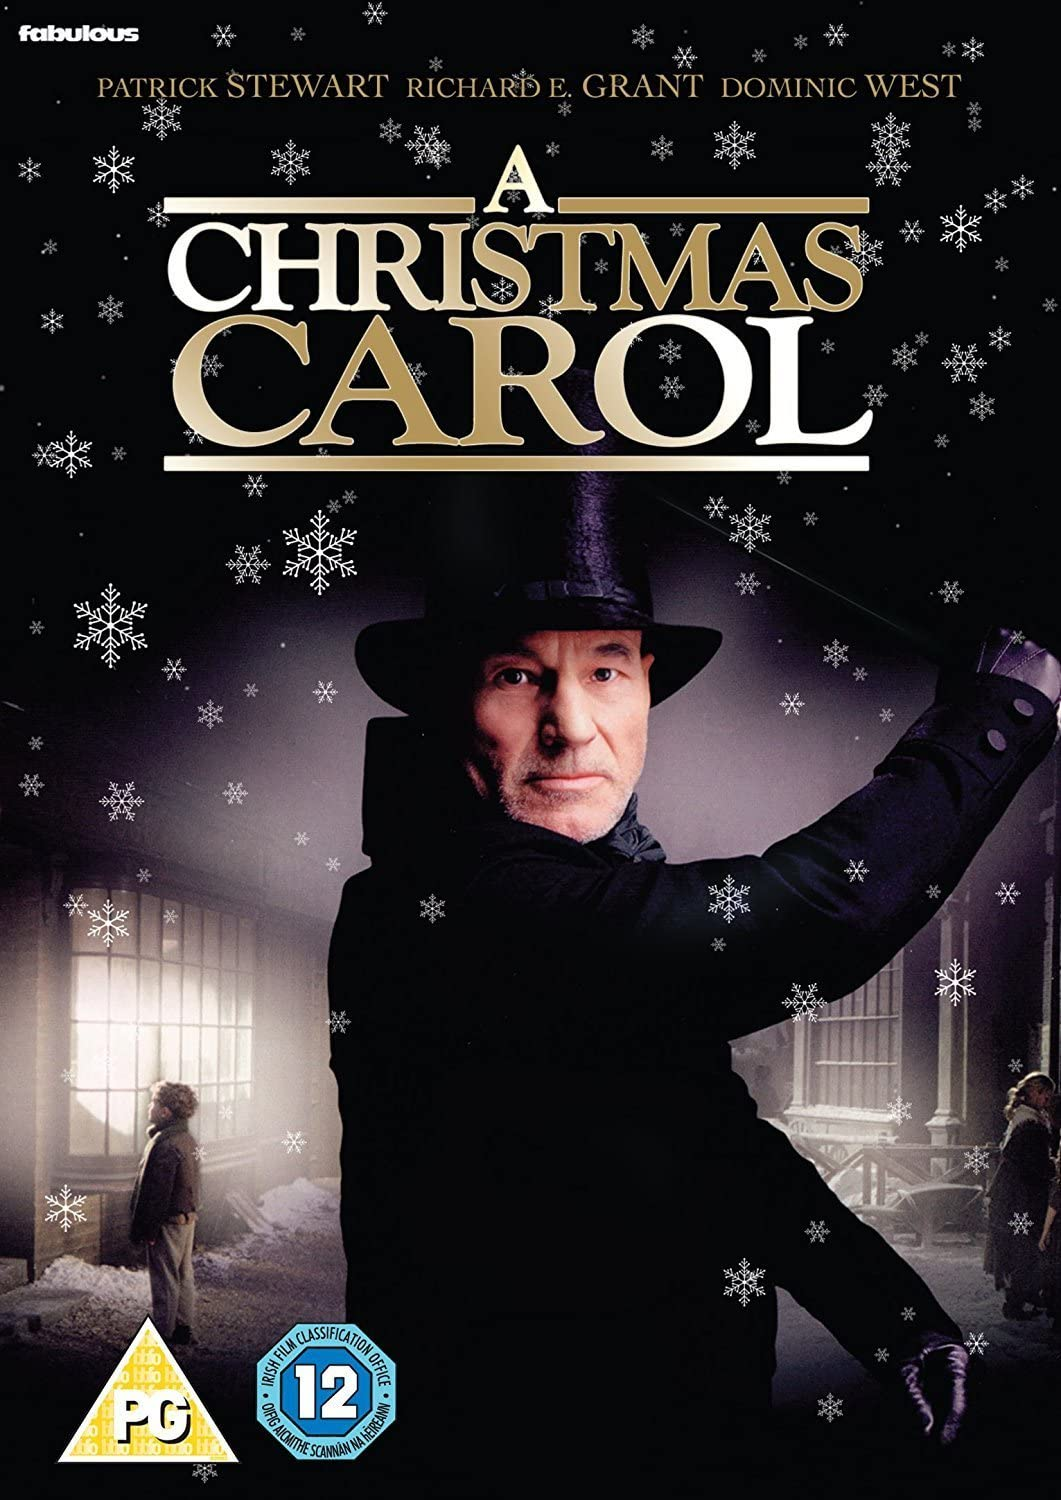 A Christmas Carol Patrick Stewart.A Christmas Carol Dvd Amazon Co Uk Patrick Stewart Richard E Grant Dominic West Liz Smith David Hugh Jones Patrick Stewart Richard E Grant Dvd Blu Ray